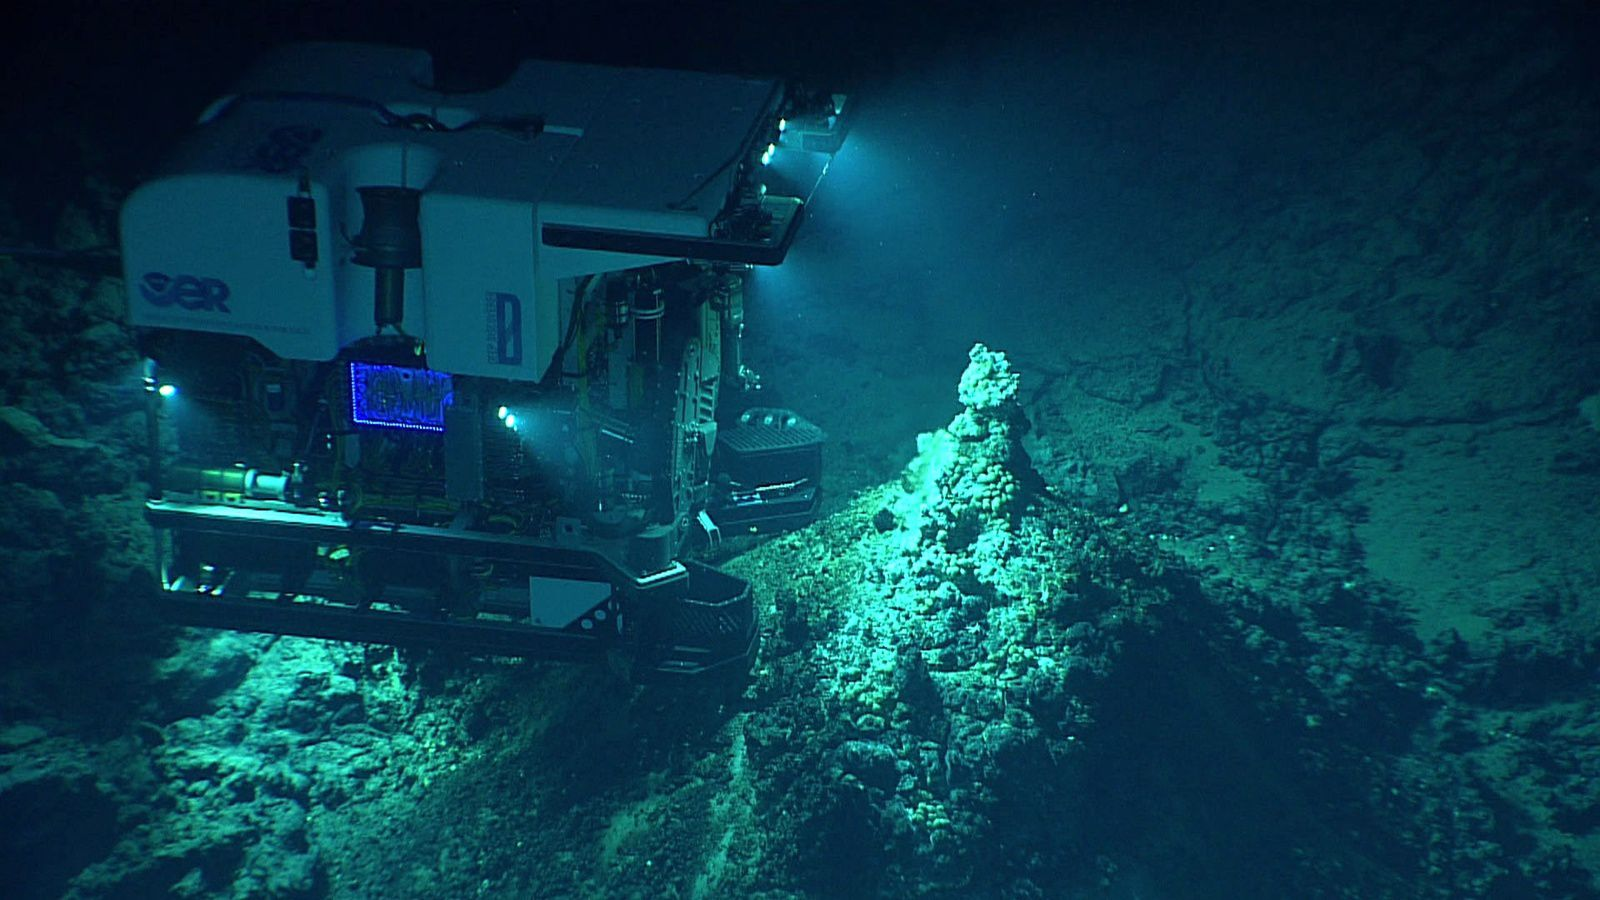 Le ROV Deep Discover sur les évents du Chamorro seamount - 2016.06.24 - courtesy of the NOAA Office of Ocean Exploration and Research, 2016 Deepwater Exploration of the Marianas.